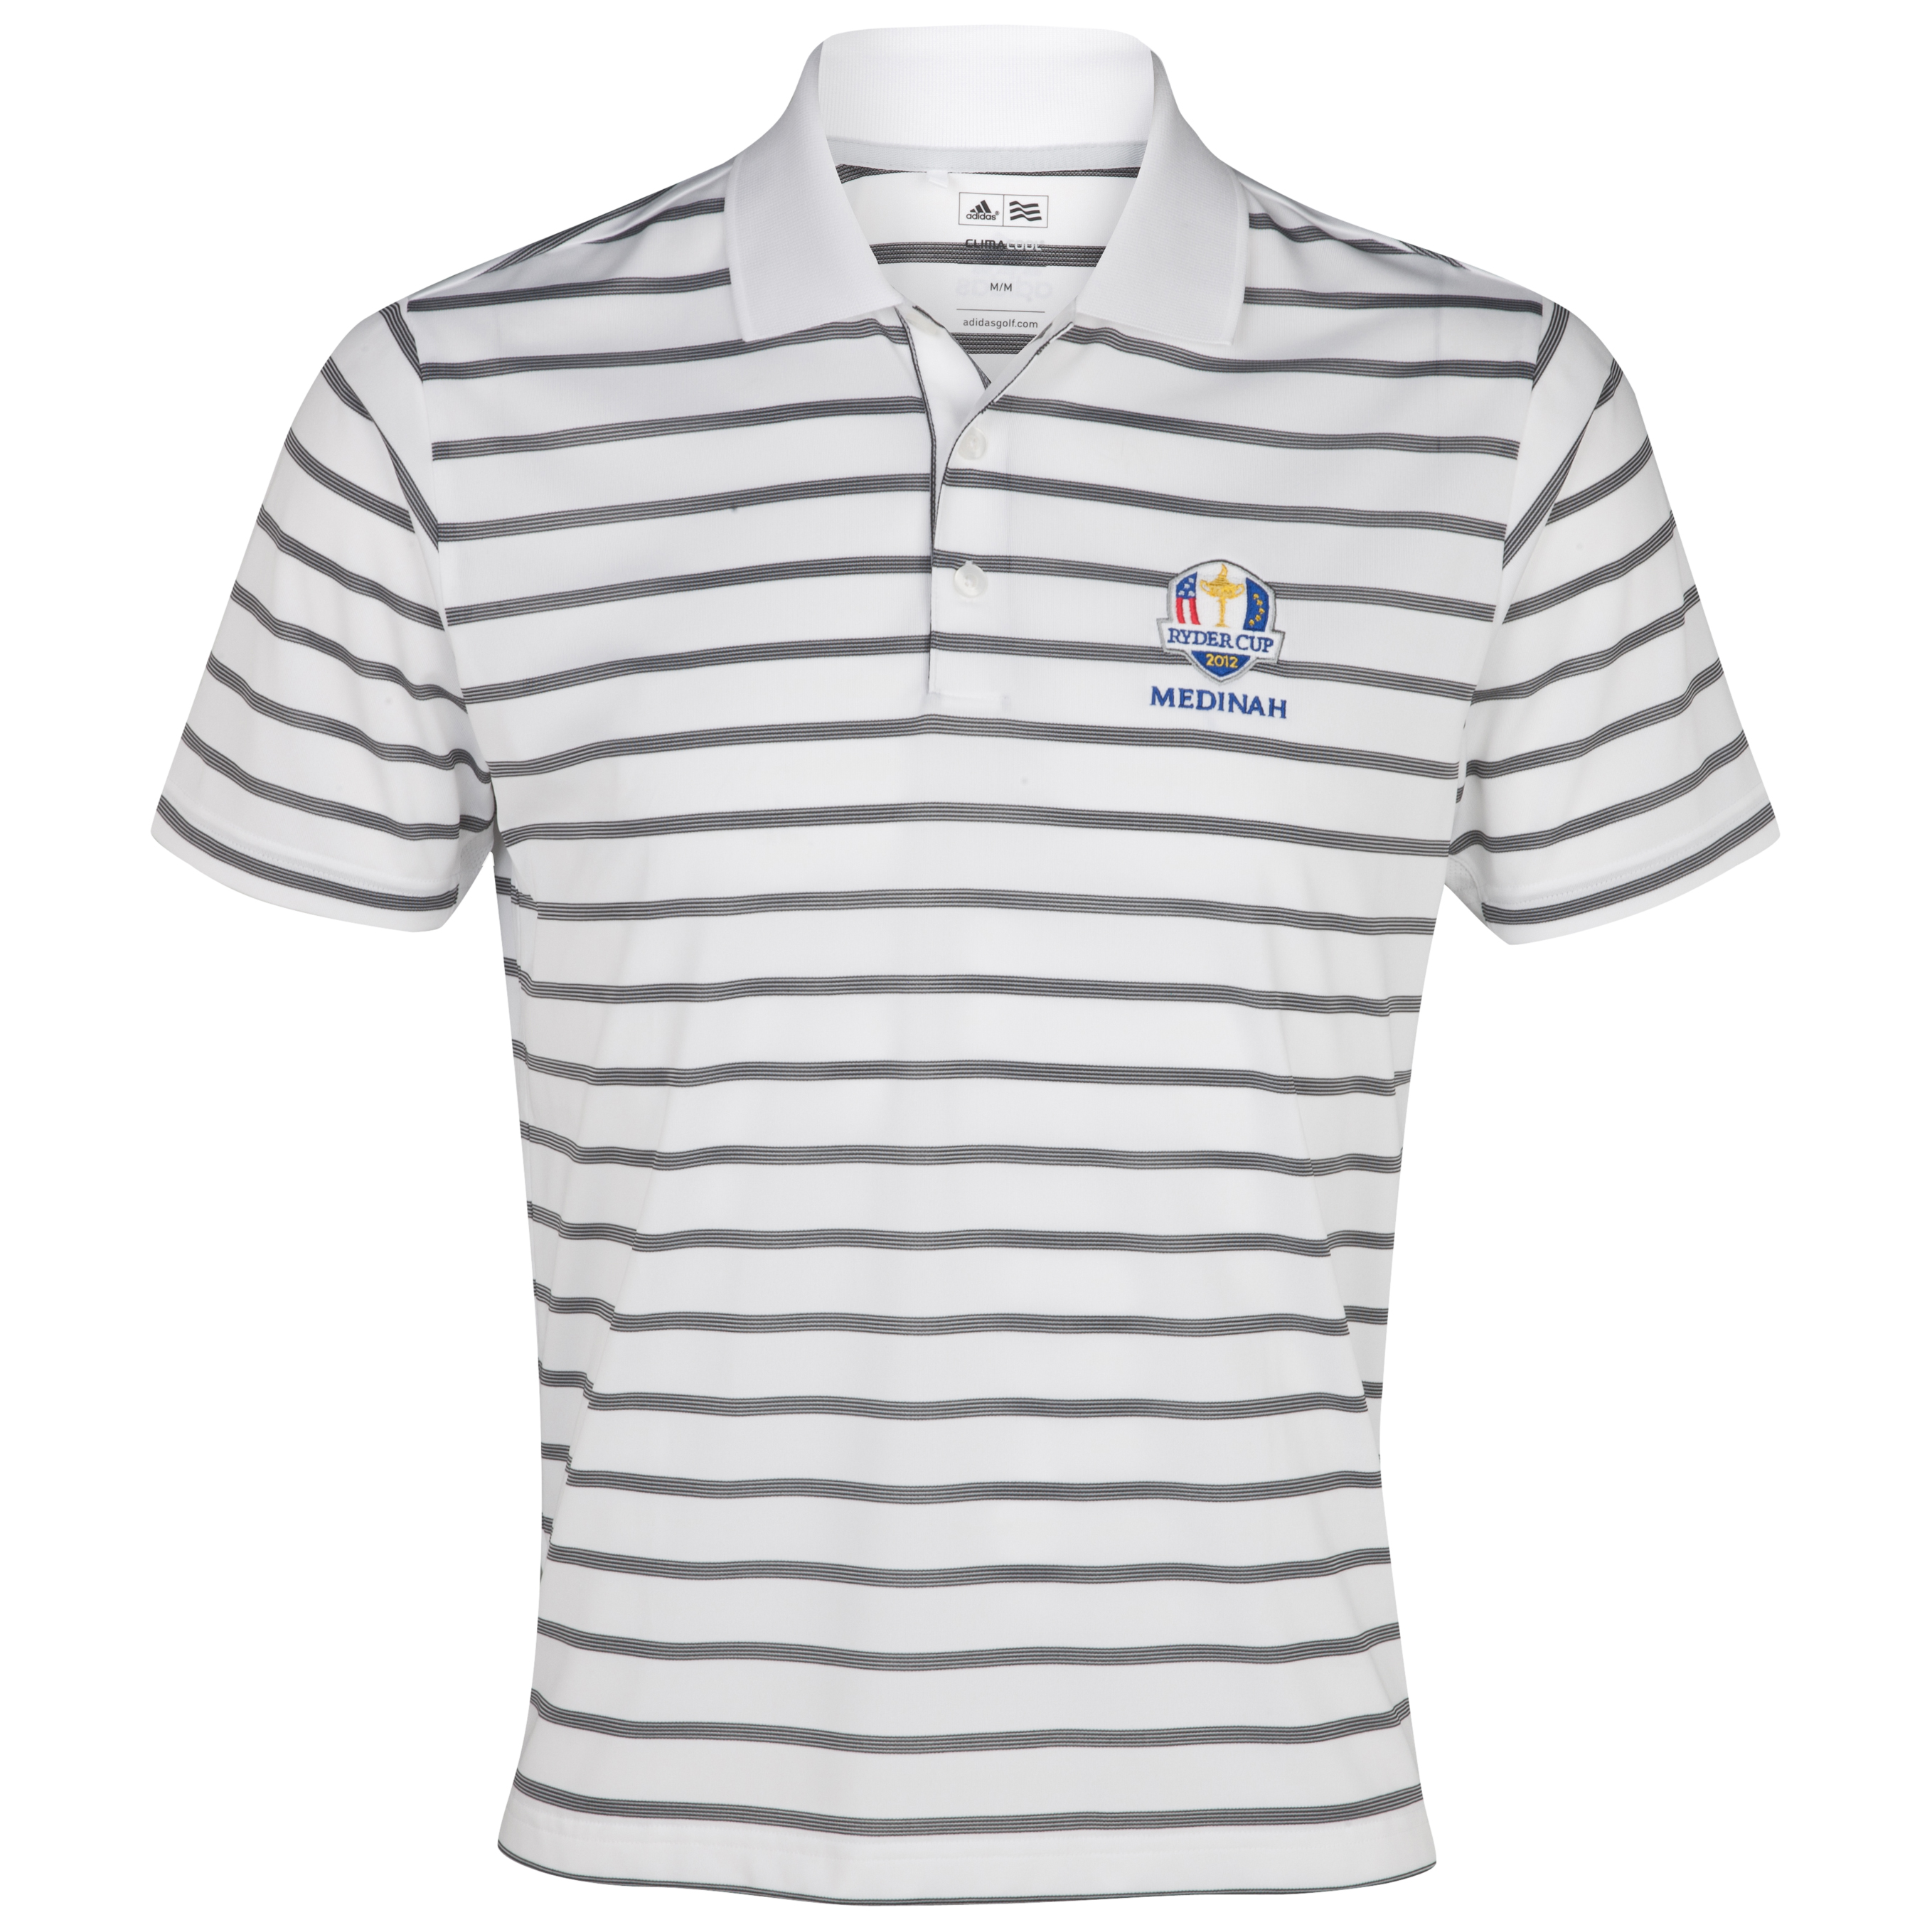 The Ryder Cup Medinah 2012 adidas ClimaCool Textured Stripe Polo - White/Black